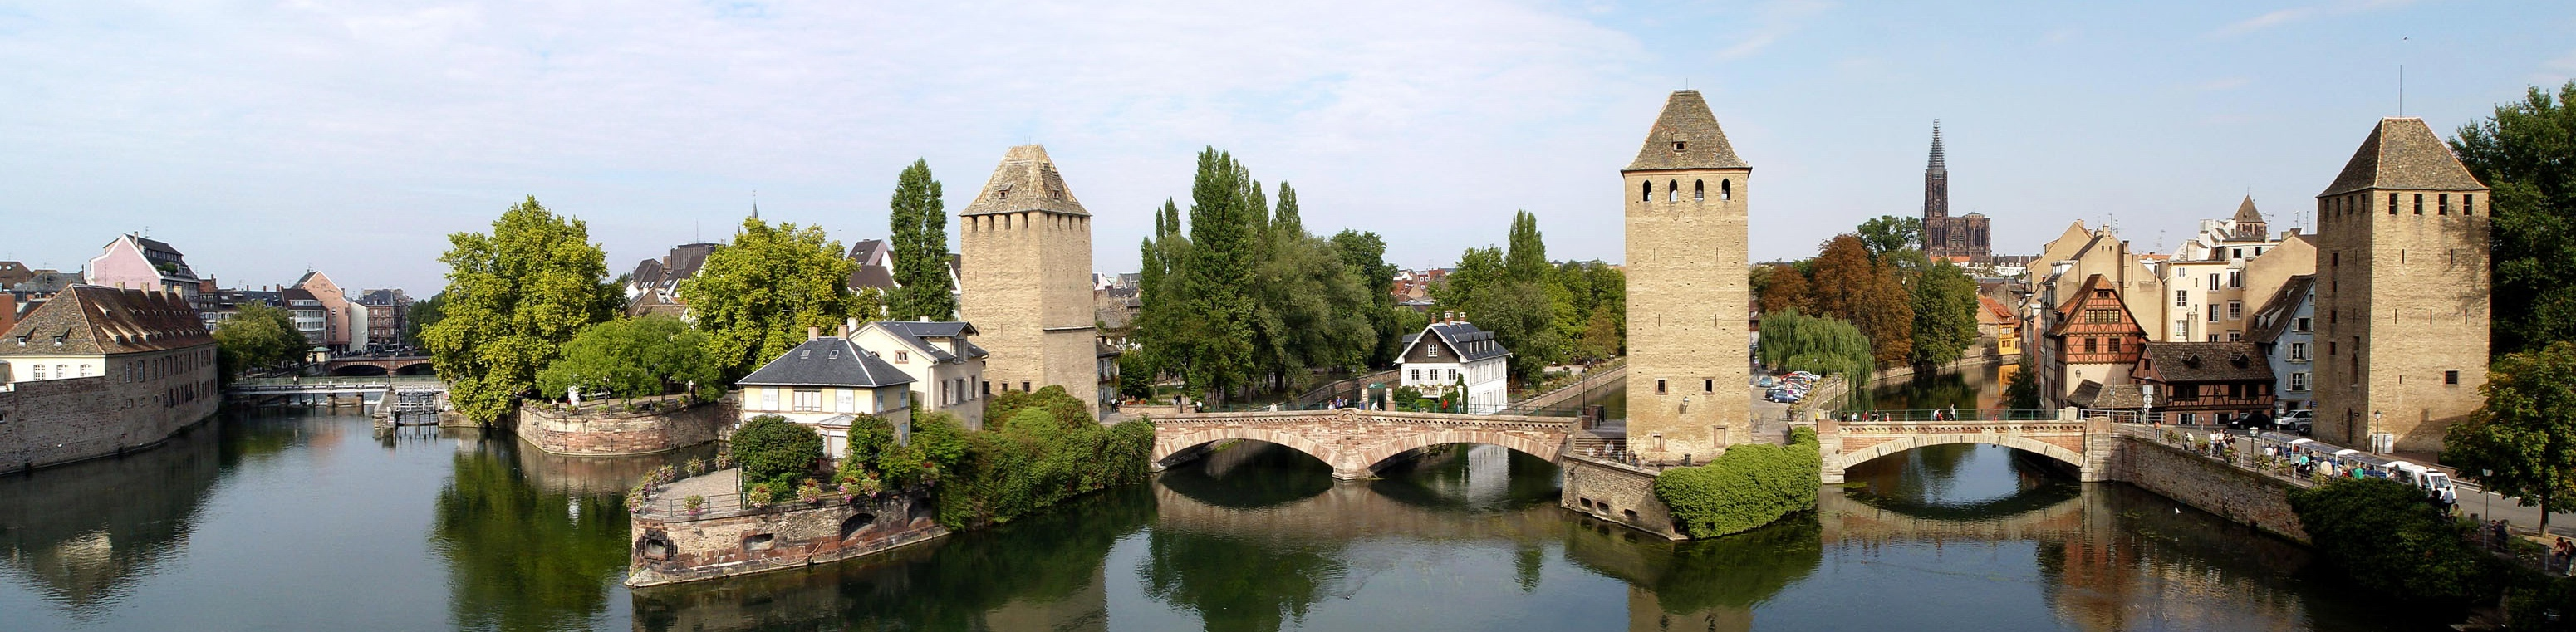 http://upload.wikimedia.org/wikipedia/commons/4/47/Strasbourg_-_Ponts_Couverts_vus_de_la_terrasse_panoramique_02.jpg